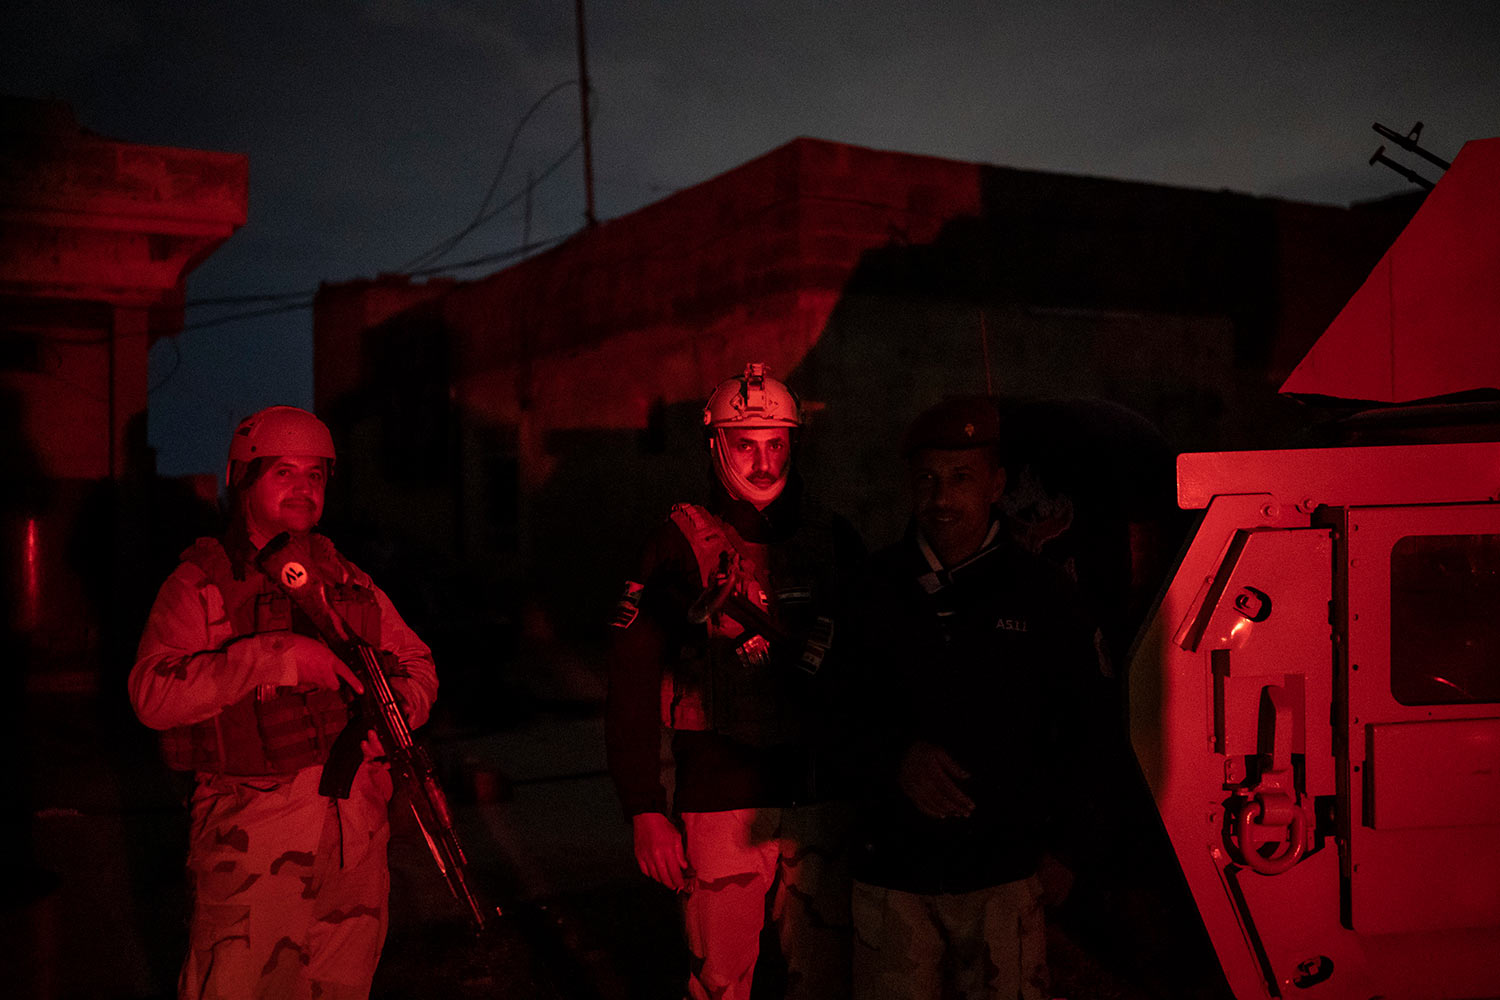 In this April 2, 2019 photo, Iraqi army 20th division soldiers stands next to a Humvee during a nighttime raid near Badoush, Iraq. (AP Photo/Felipe Dana)